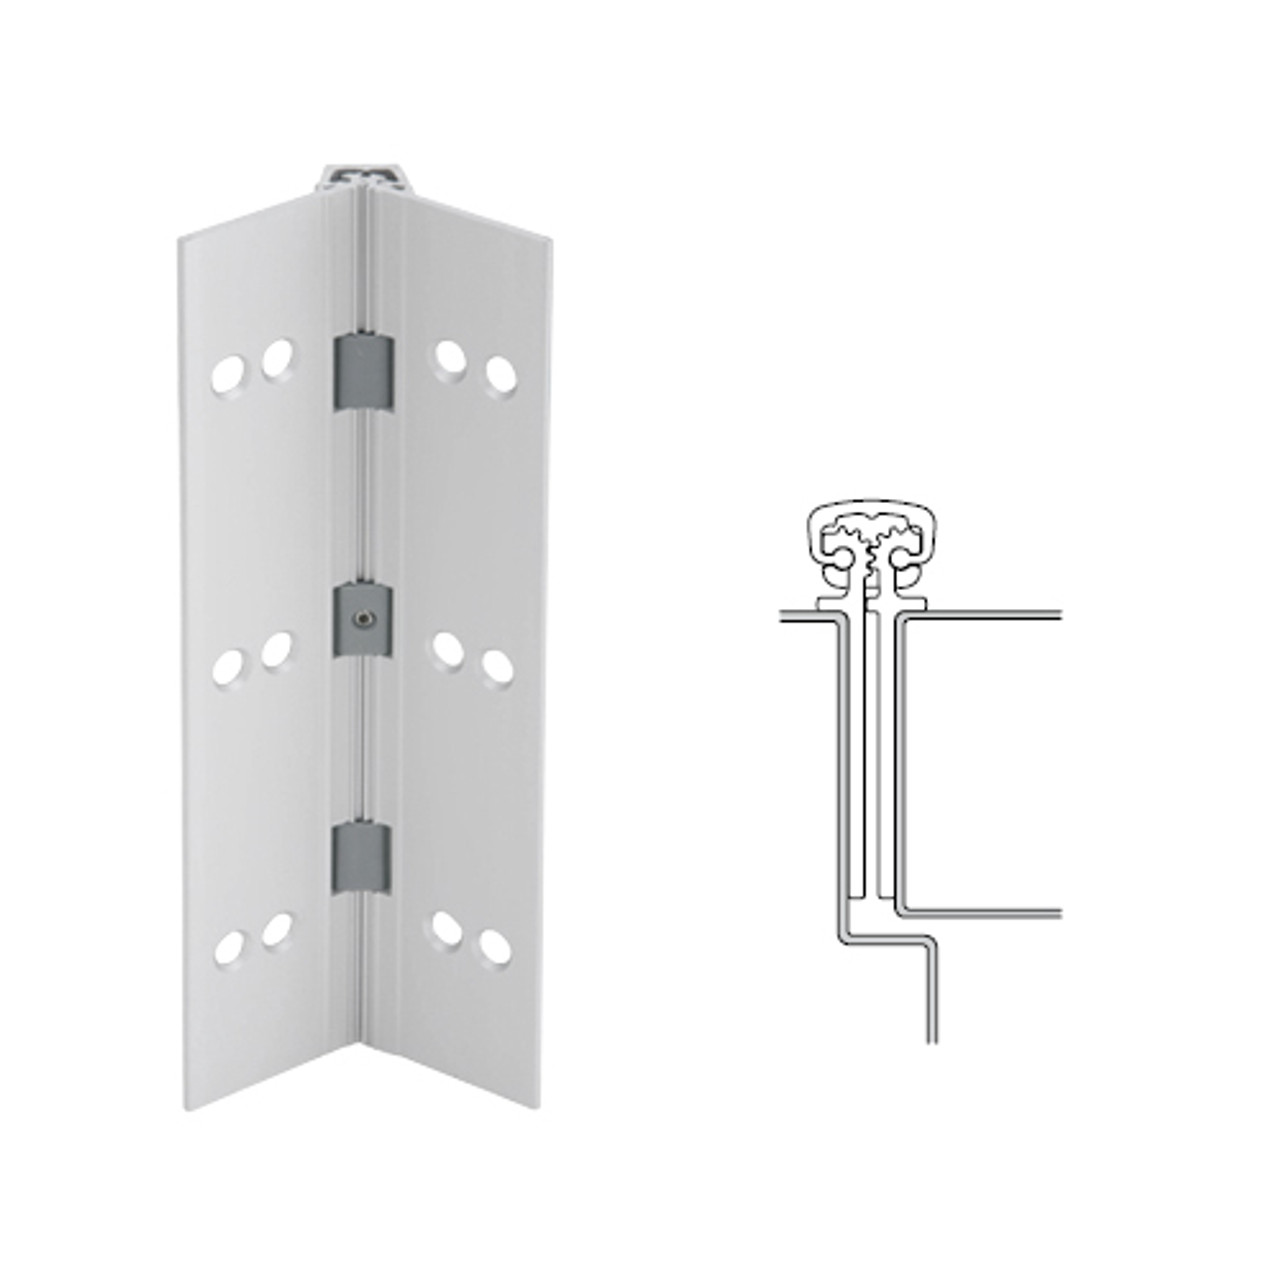 027XY-US28-120-TEKWD IVES Full Mortise Continuous Geared Hinges with Wood Screws in Satin Aluminum